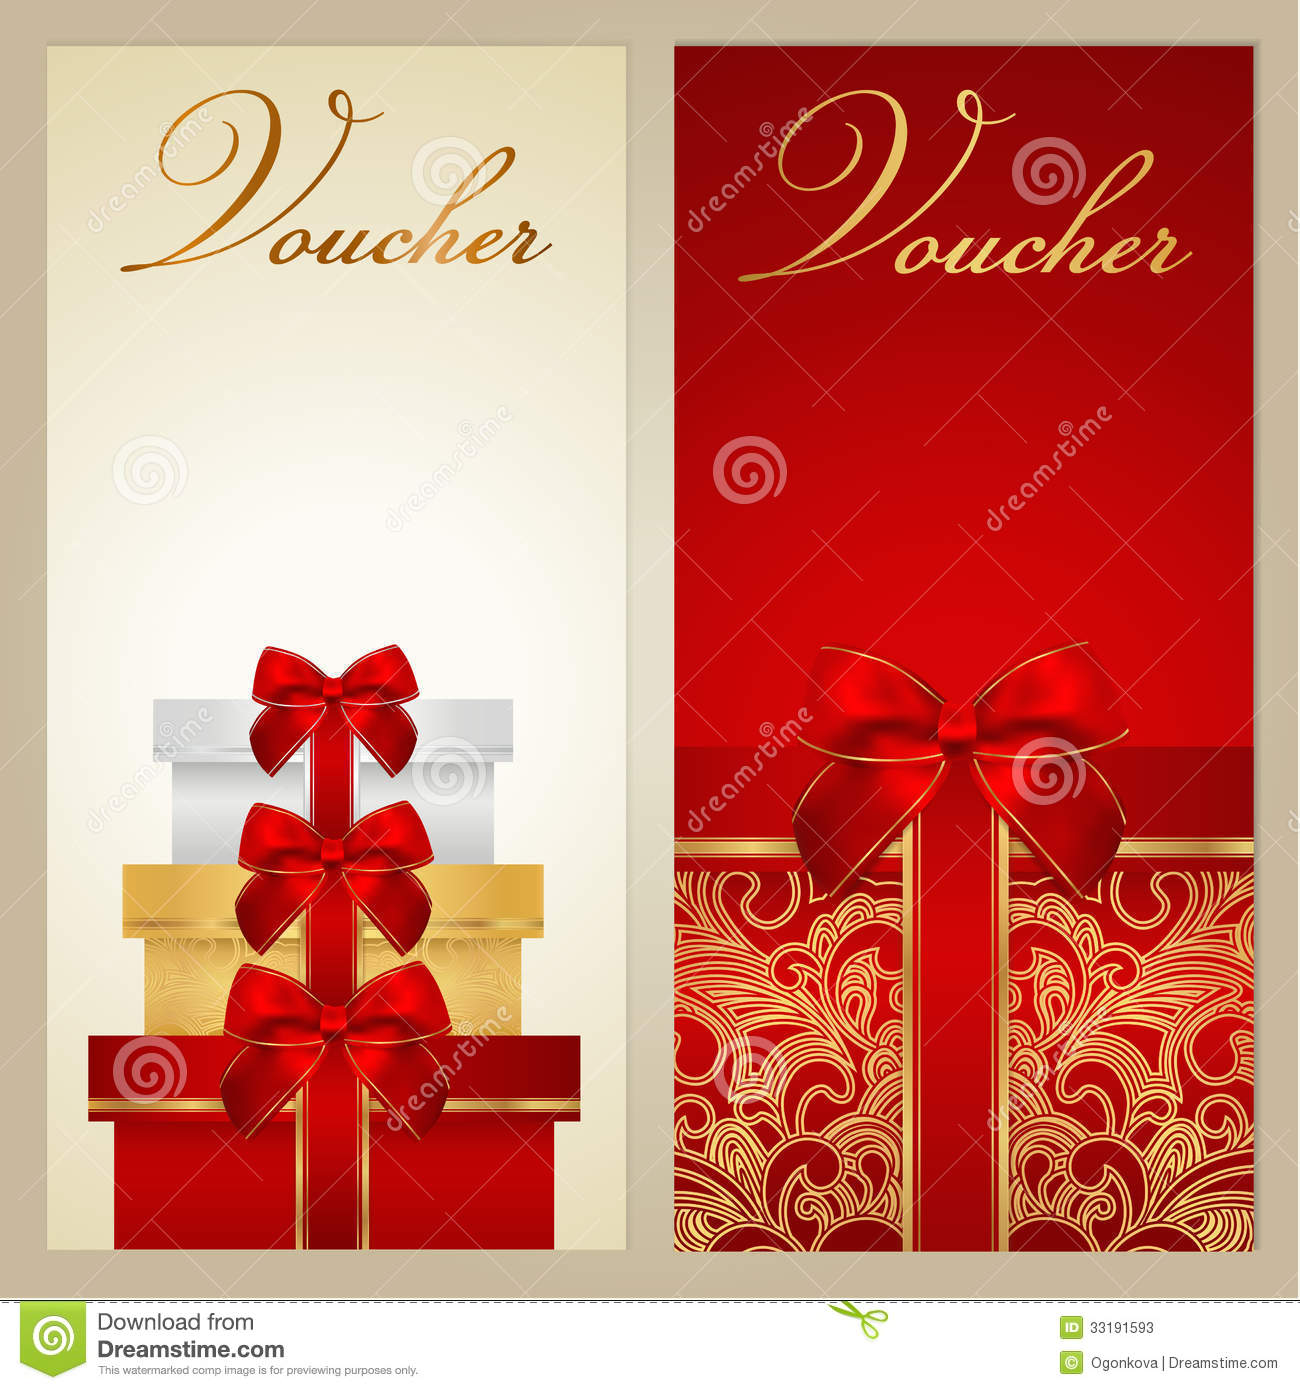 voucher gift certificate coupon template border bow ribbons voucher gift certificate coupon template border bow ribbons